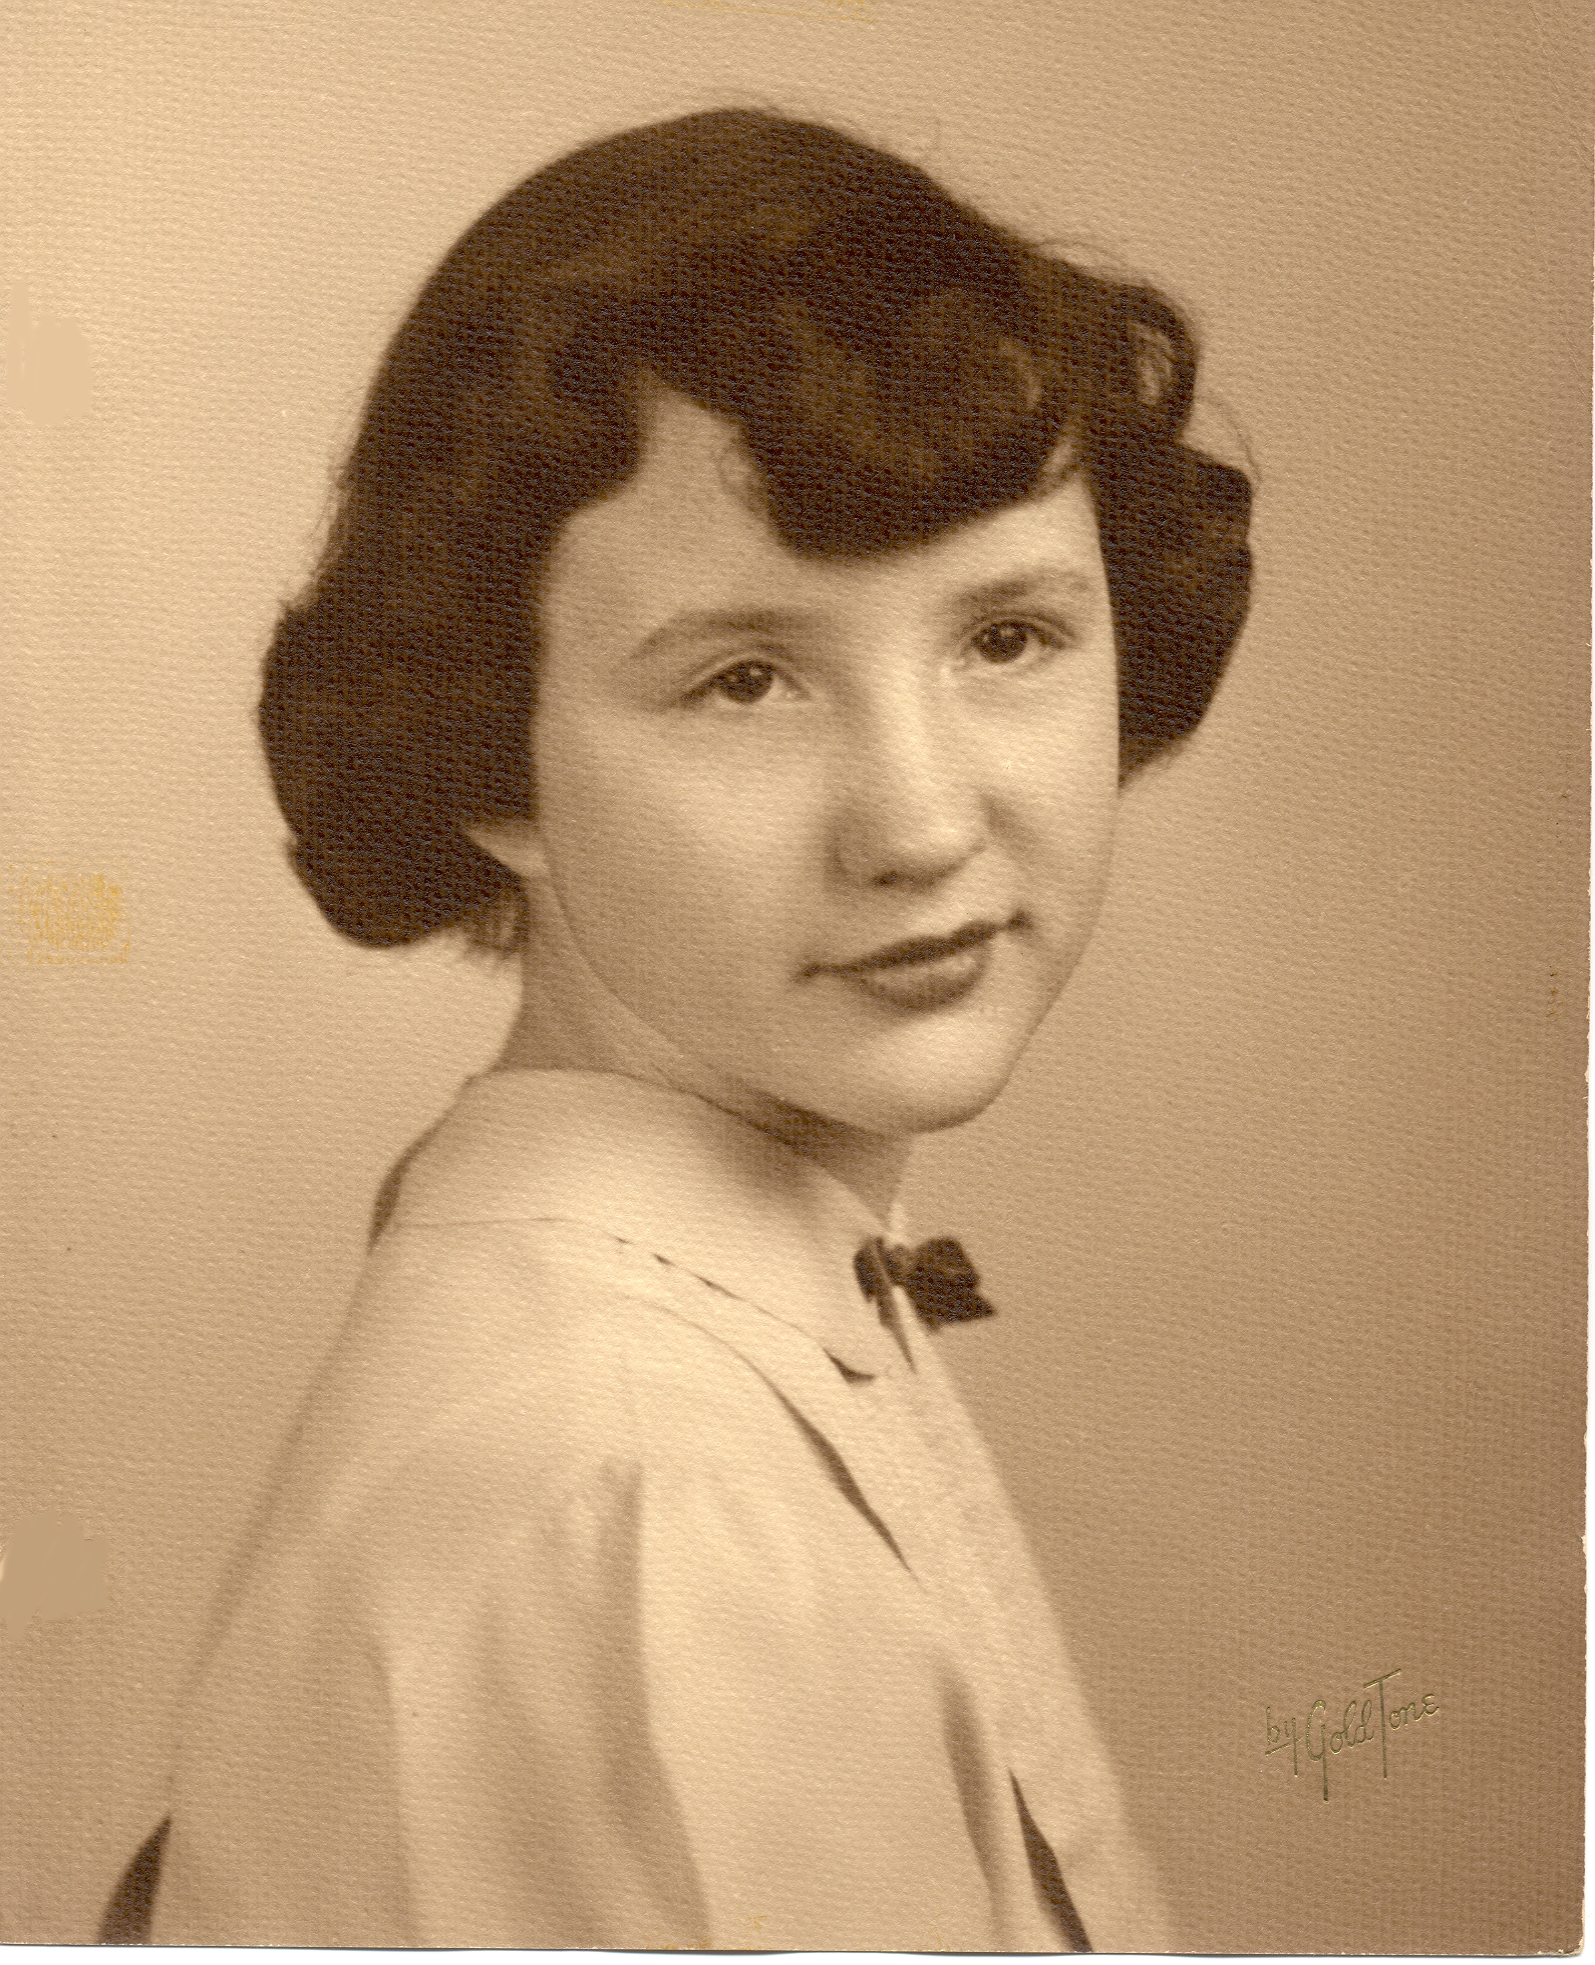 Ruth Scheletema as a young teenager.